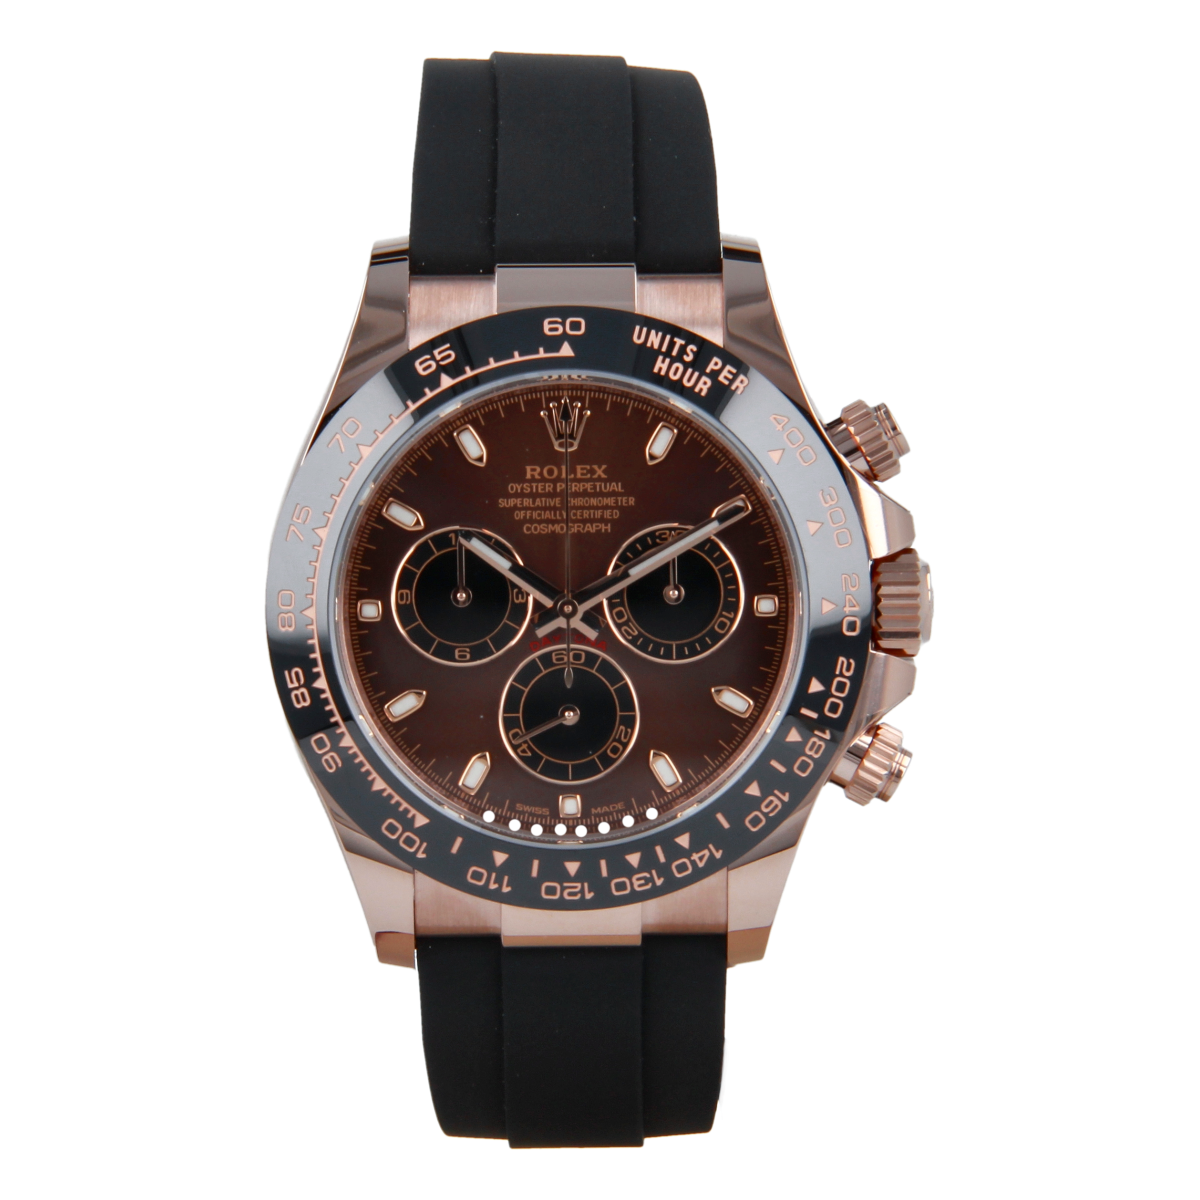 Rolex Cosmograph Daytona 116515LN Everose Gold Chocolate Dial *Brand-New* | Buy pre-owned Rolex watch